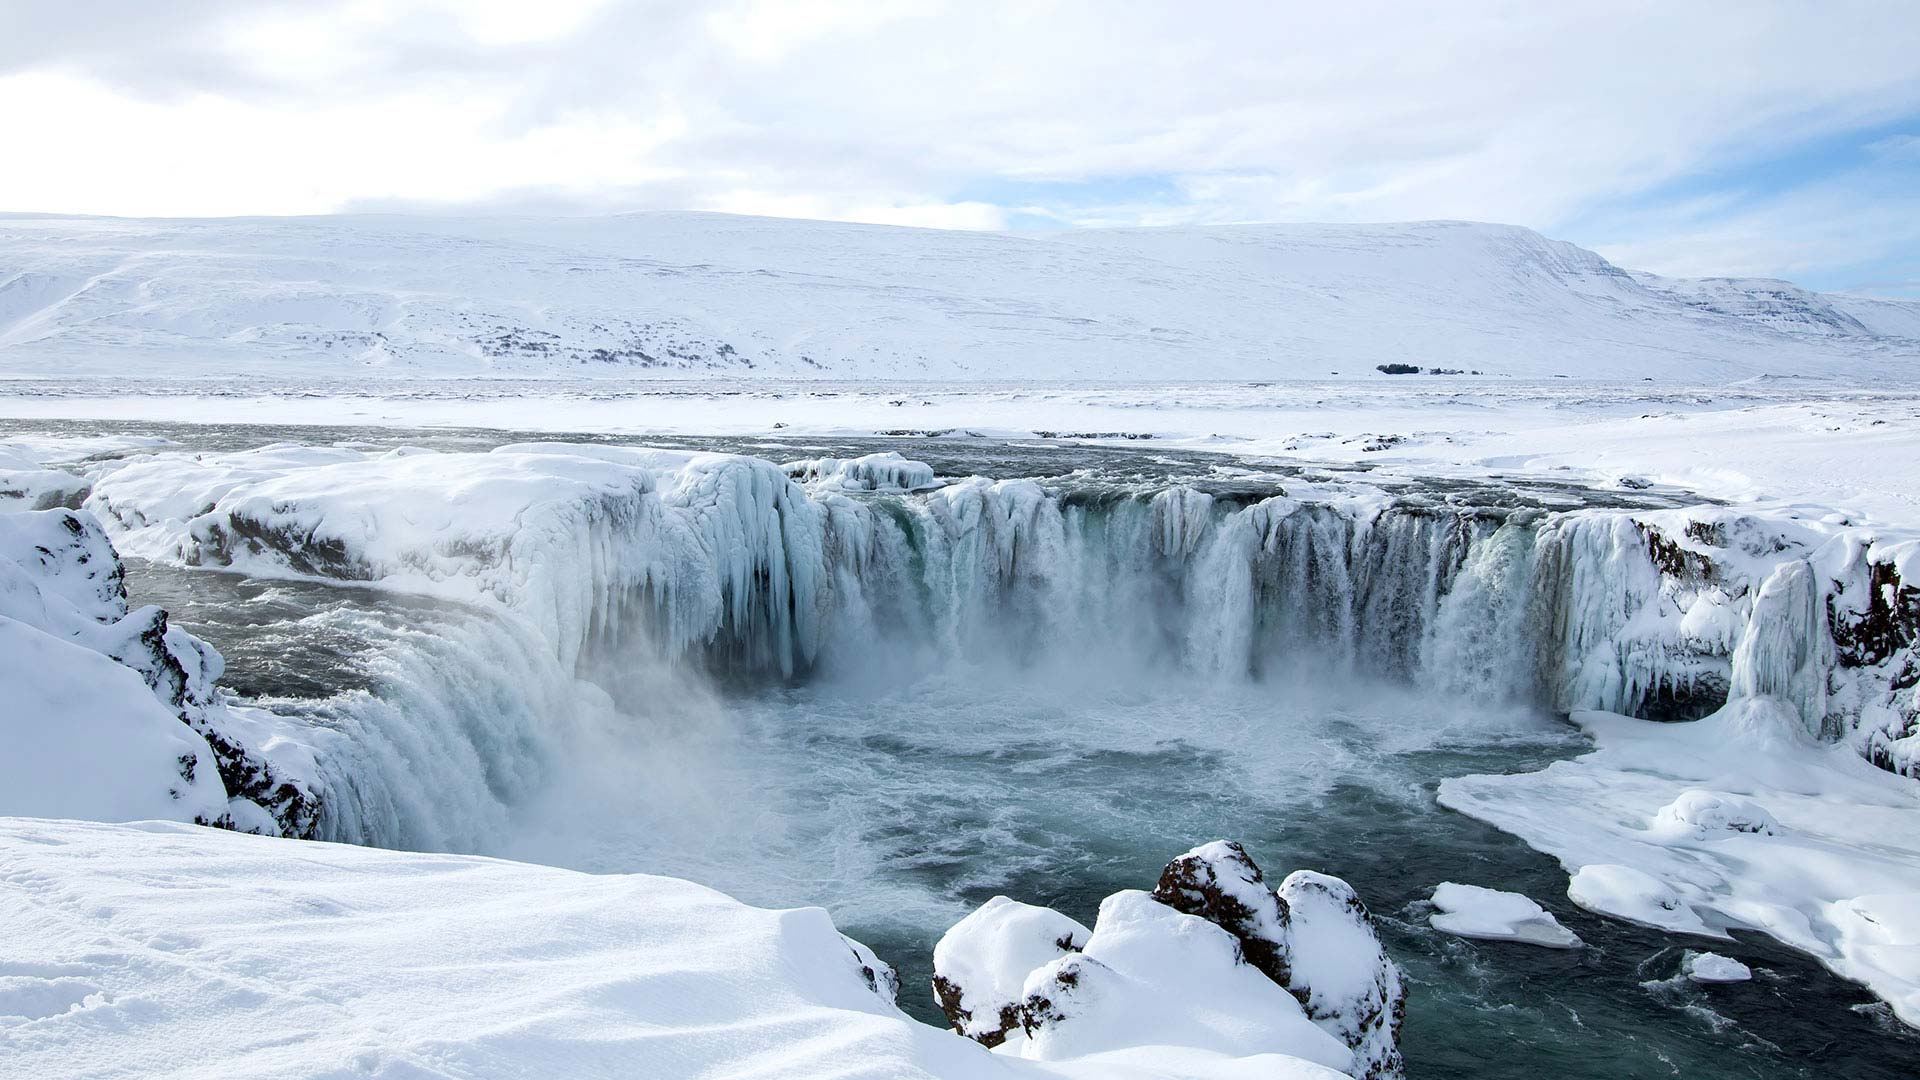 iceland full circle winter 10 days 9 nights nordic visitor